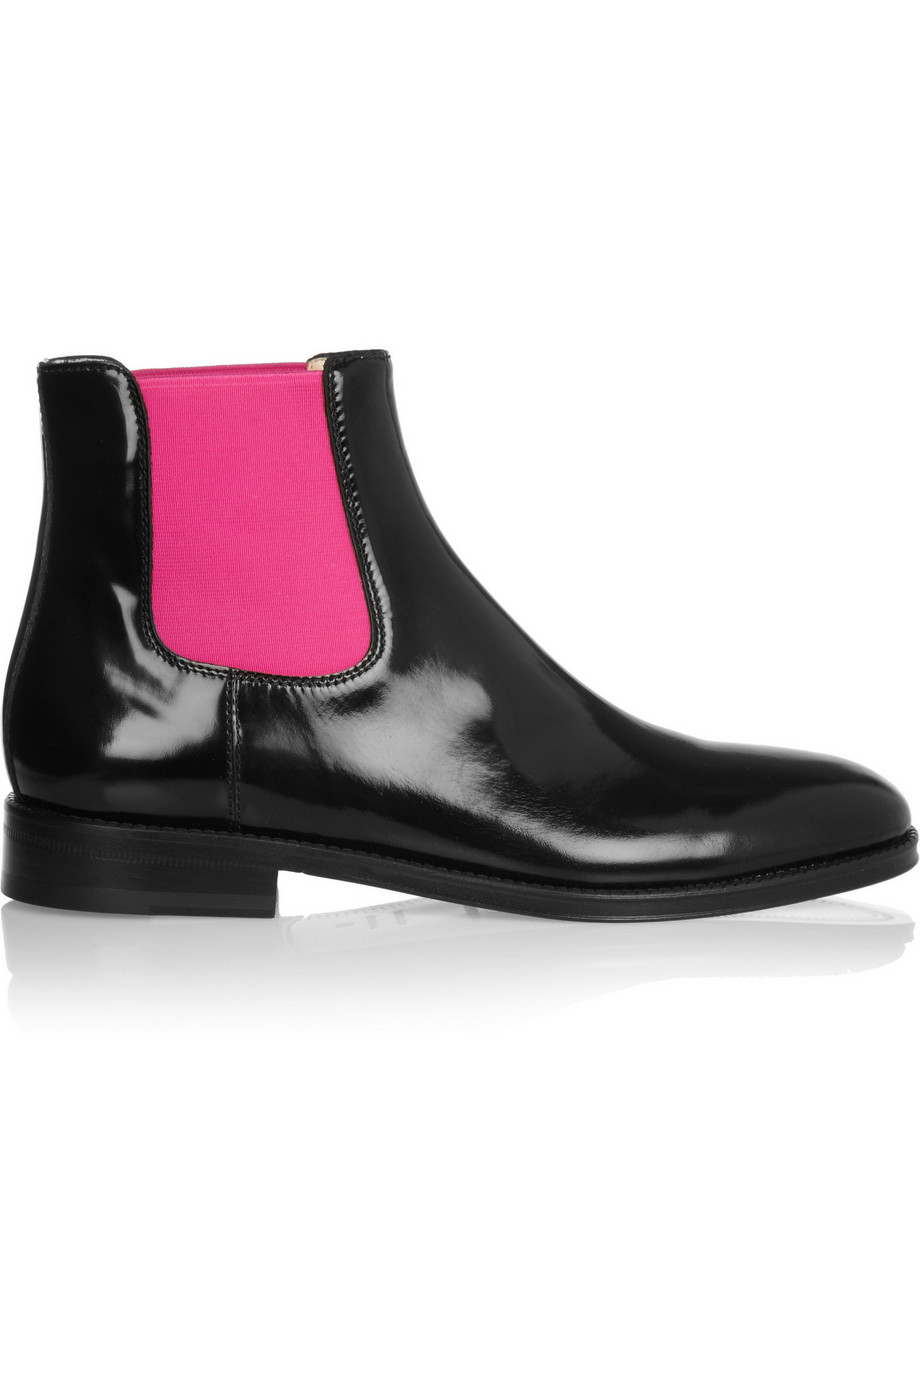 Obsessed: Christopher Kane Chelsea Boots